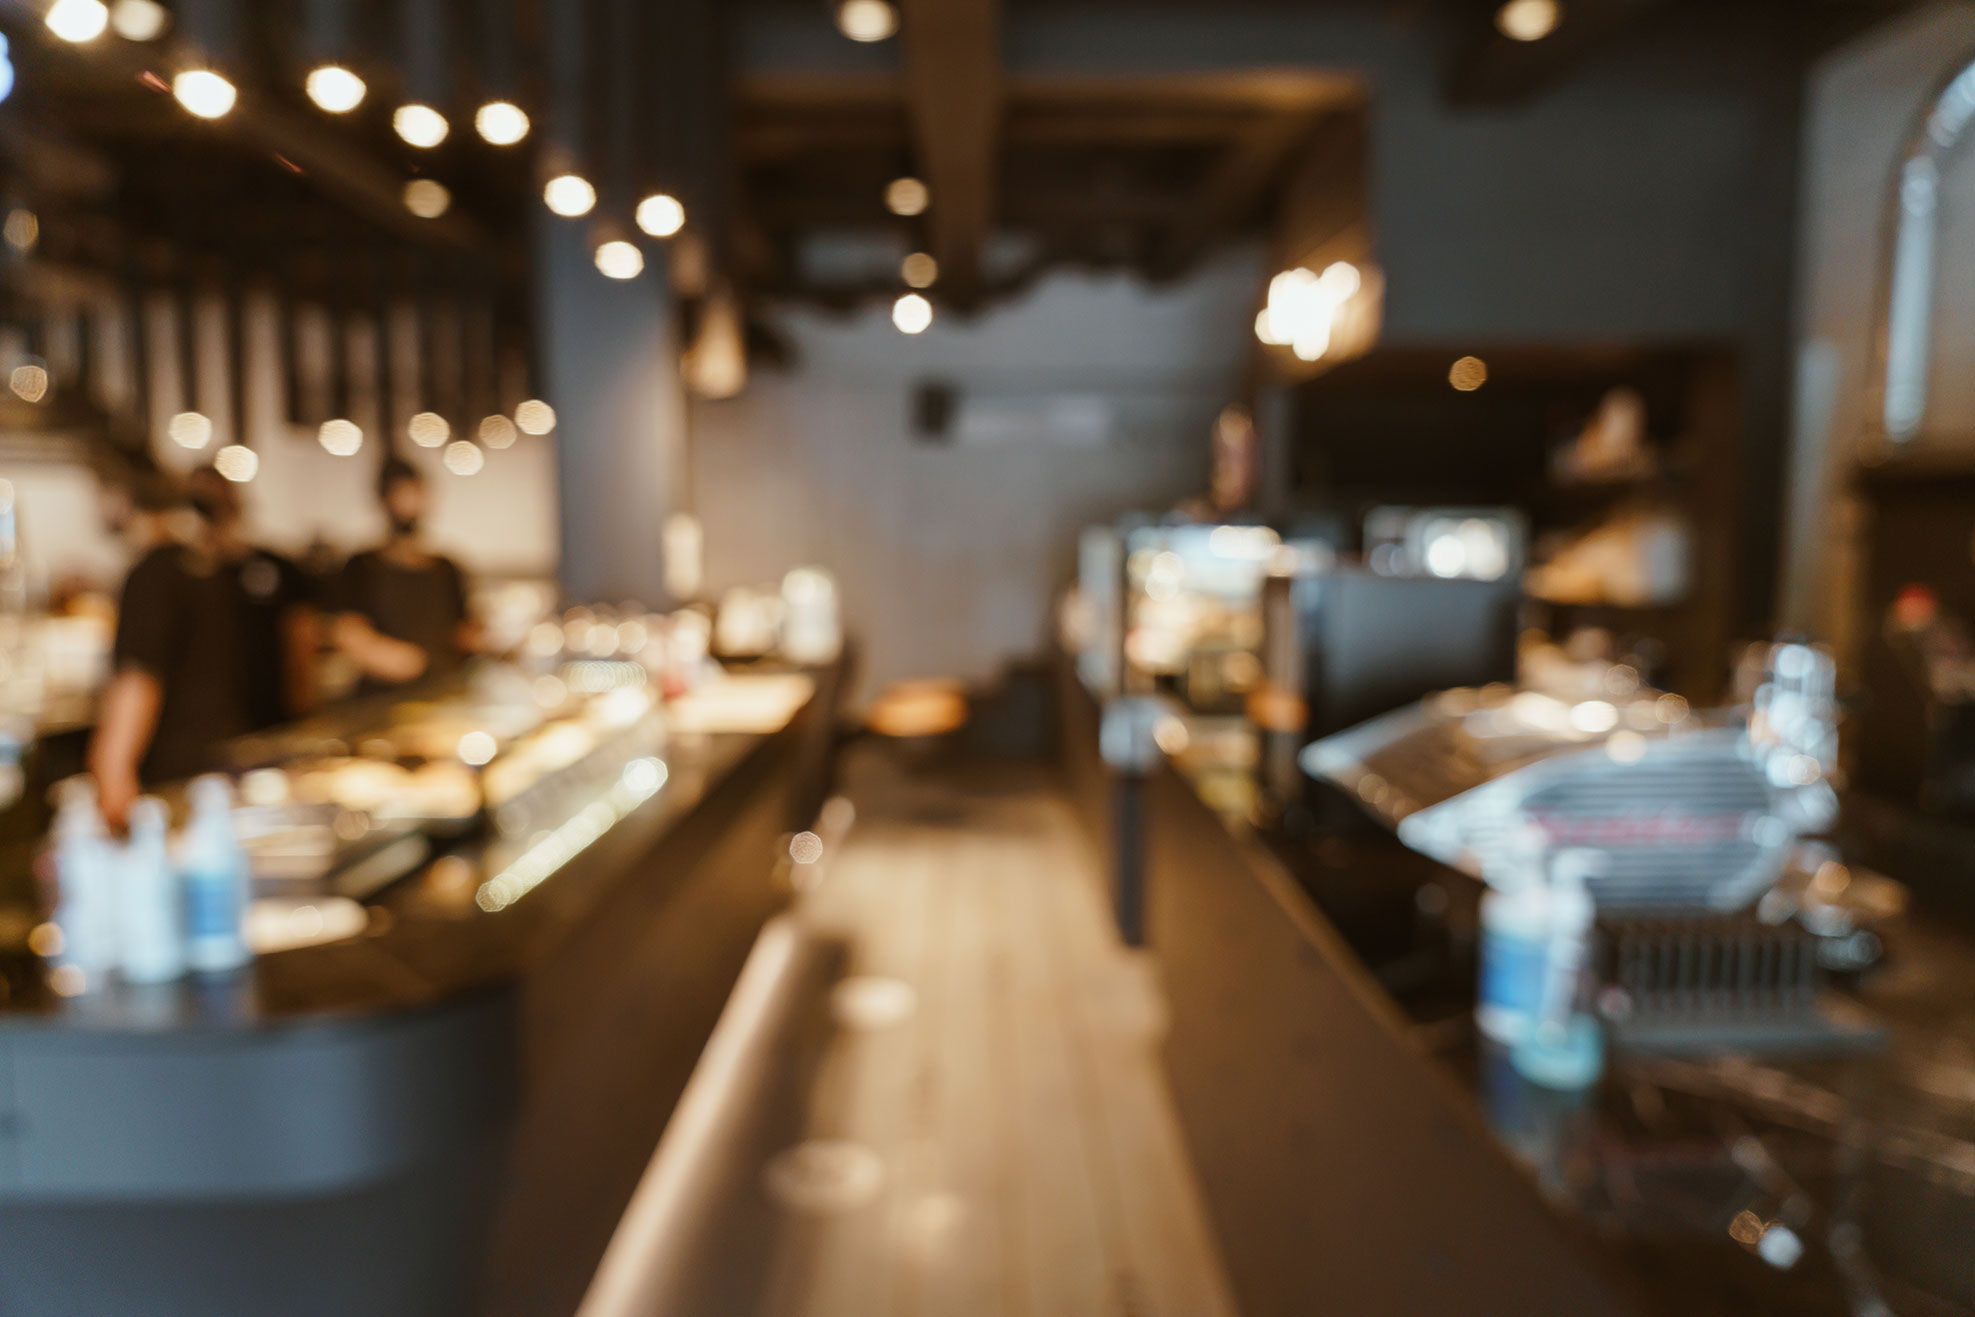 Abstract,Blur,Coffee,Shop,And,Cafe,Restaurant,For,Background